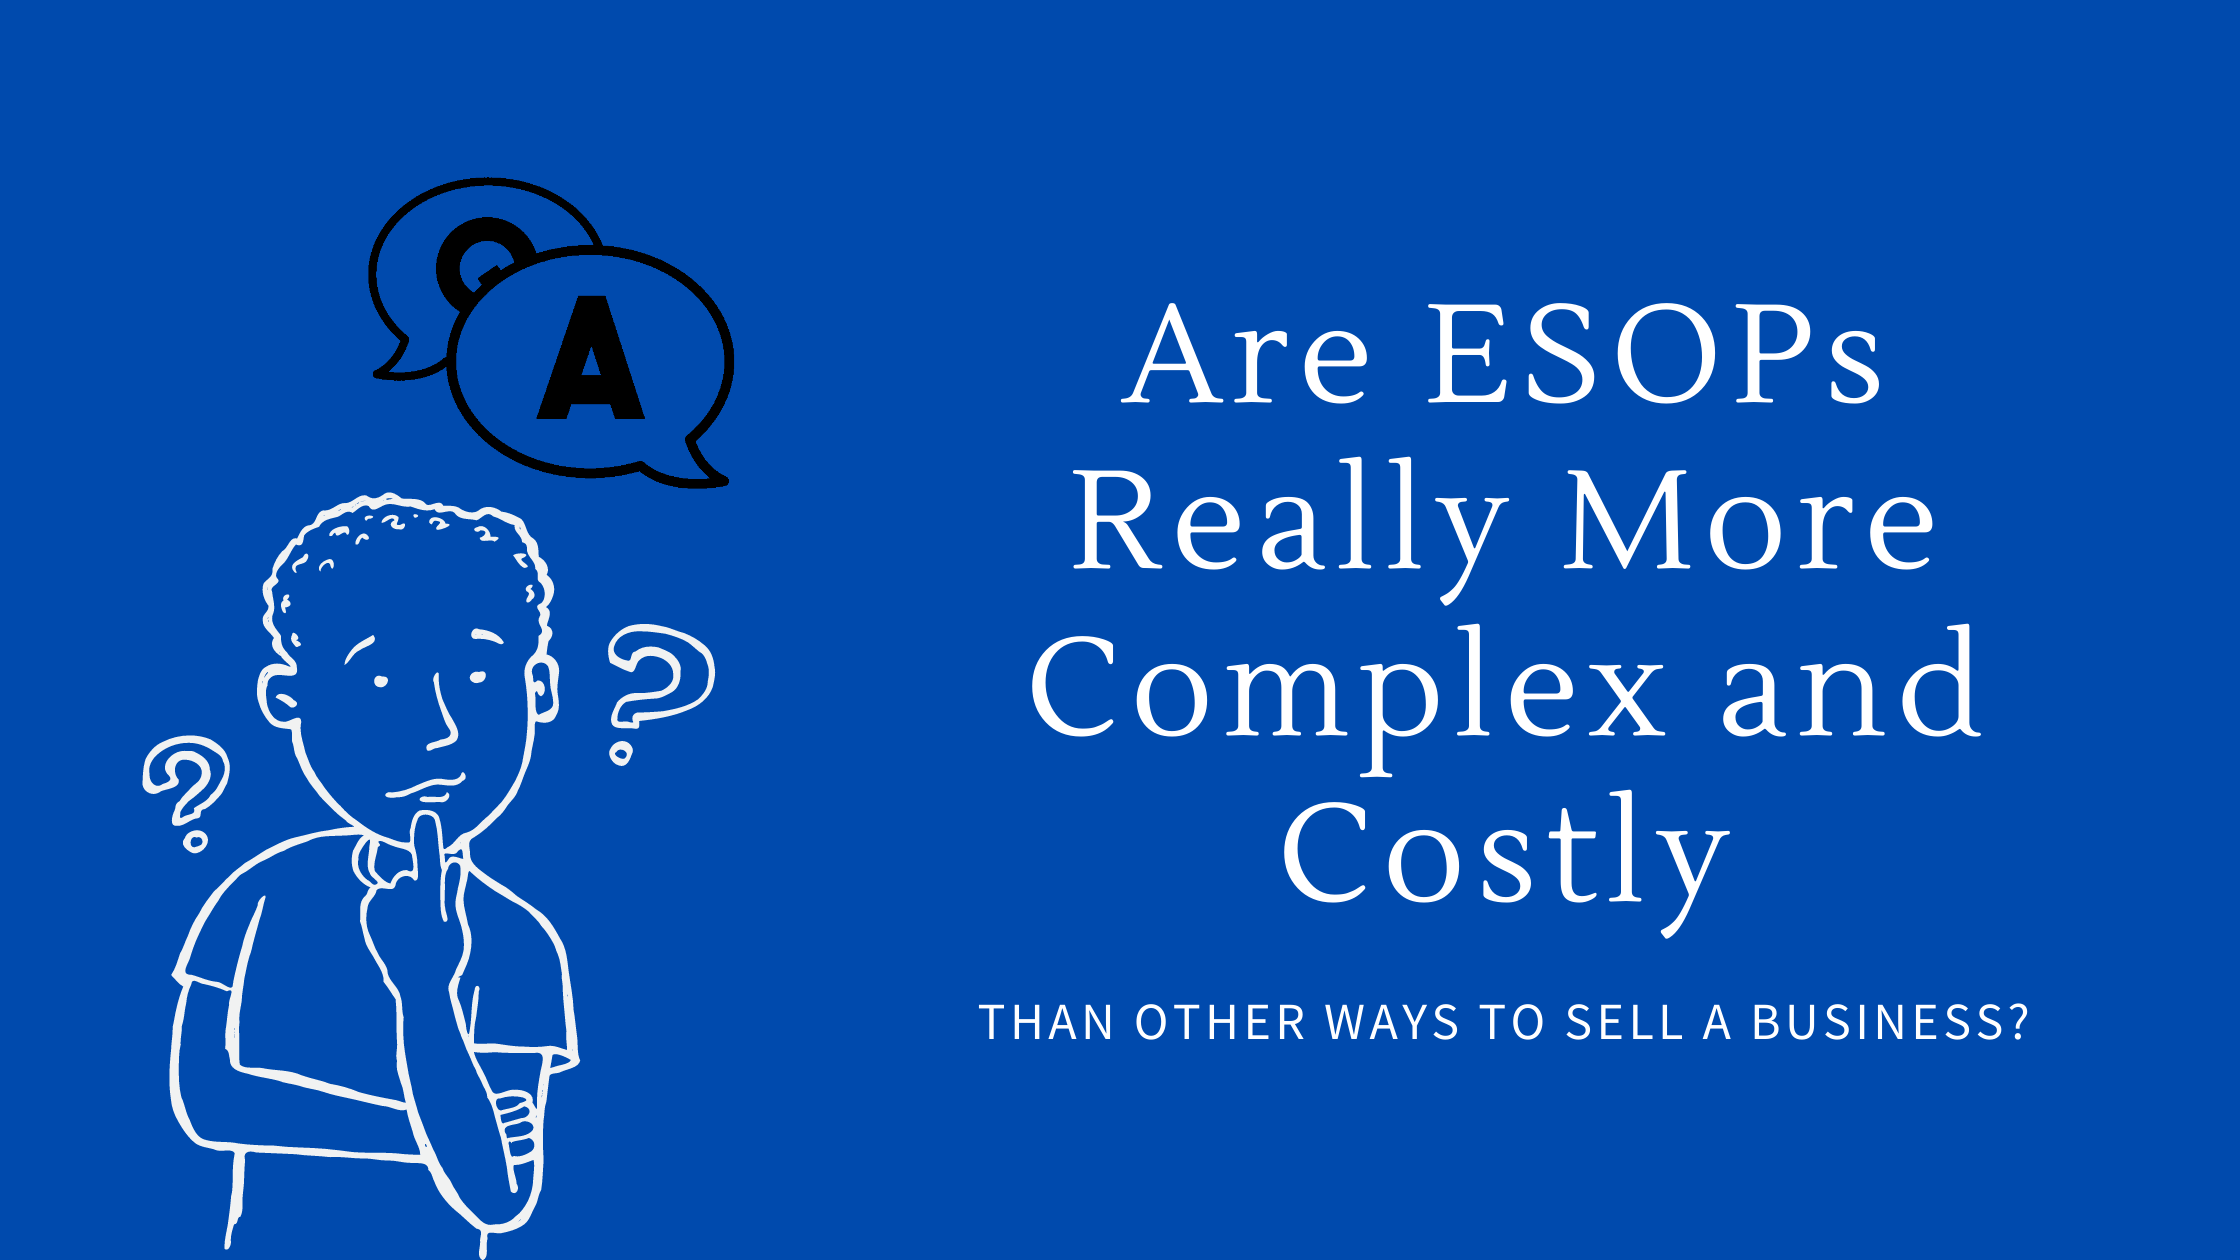 Are ESOPs Really More Complex and Costly